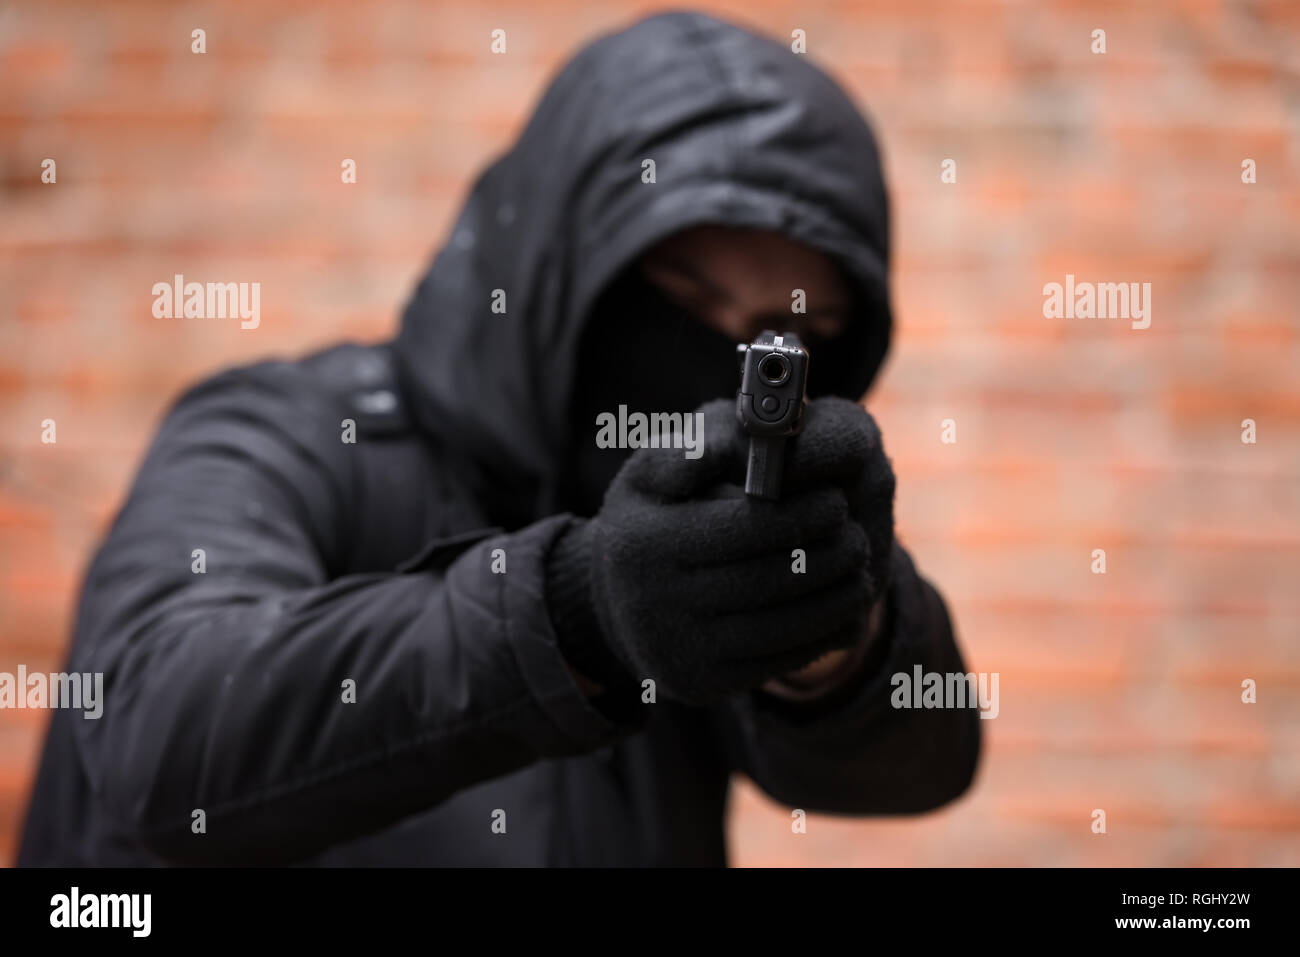 Man in black mask with handgun. Criminal and terrorism concept - Stock Image